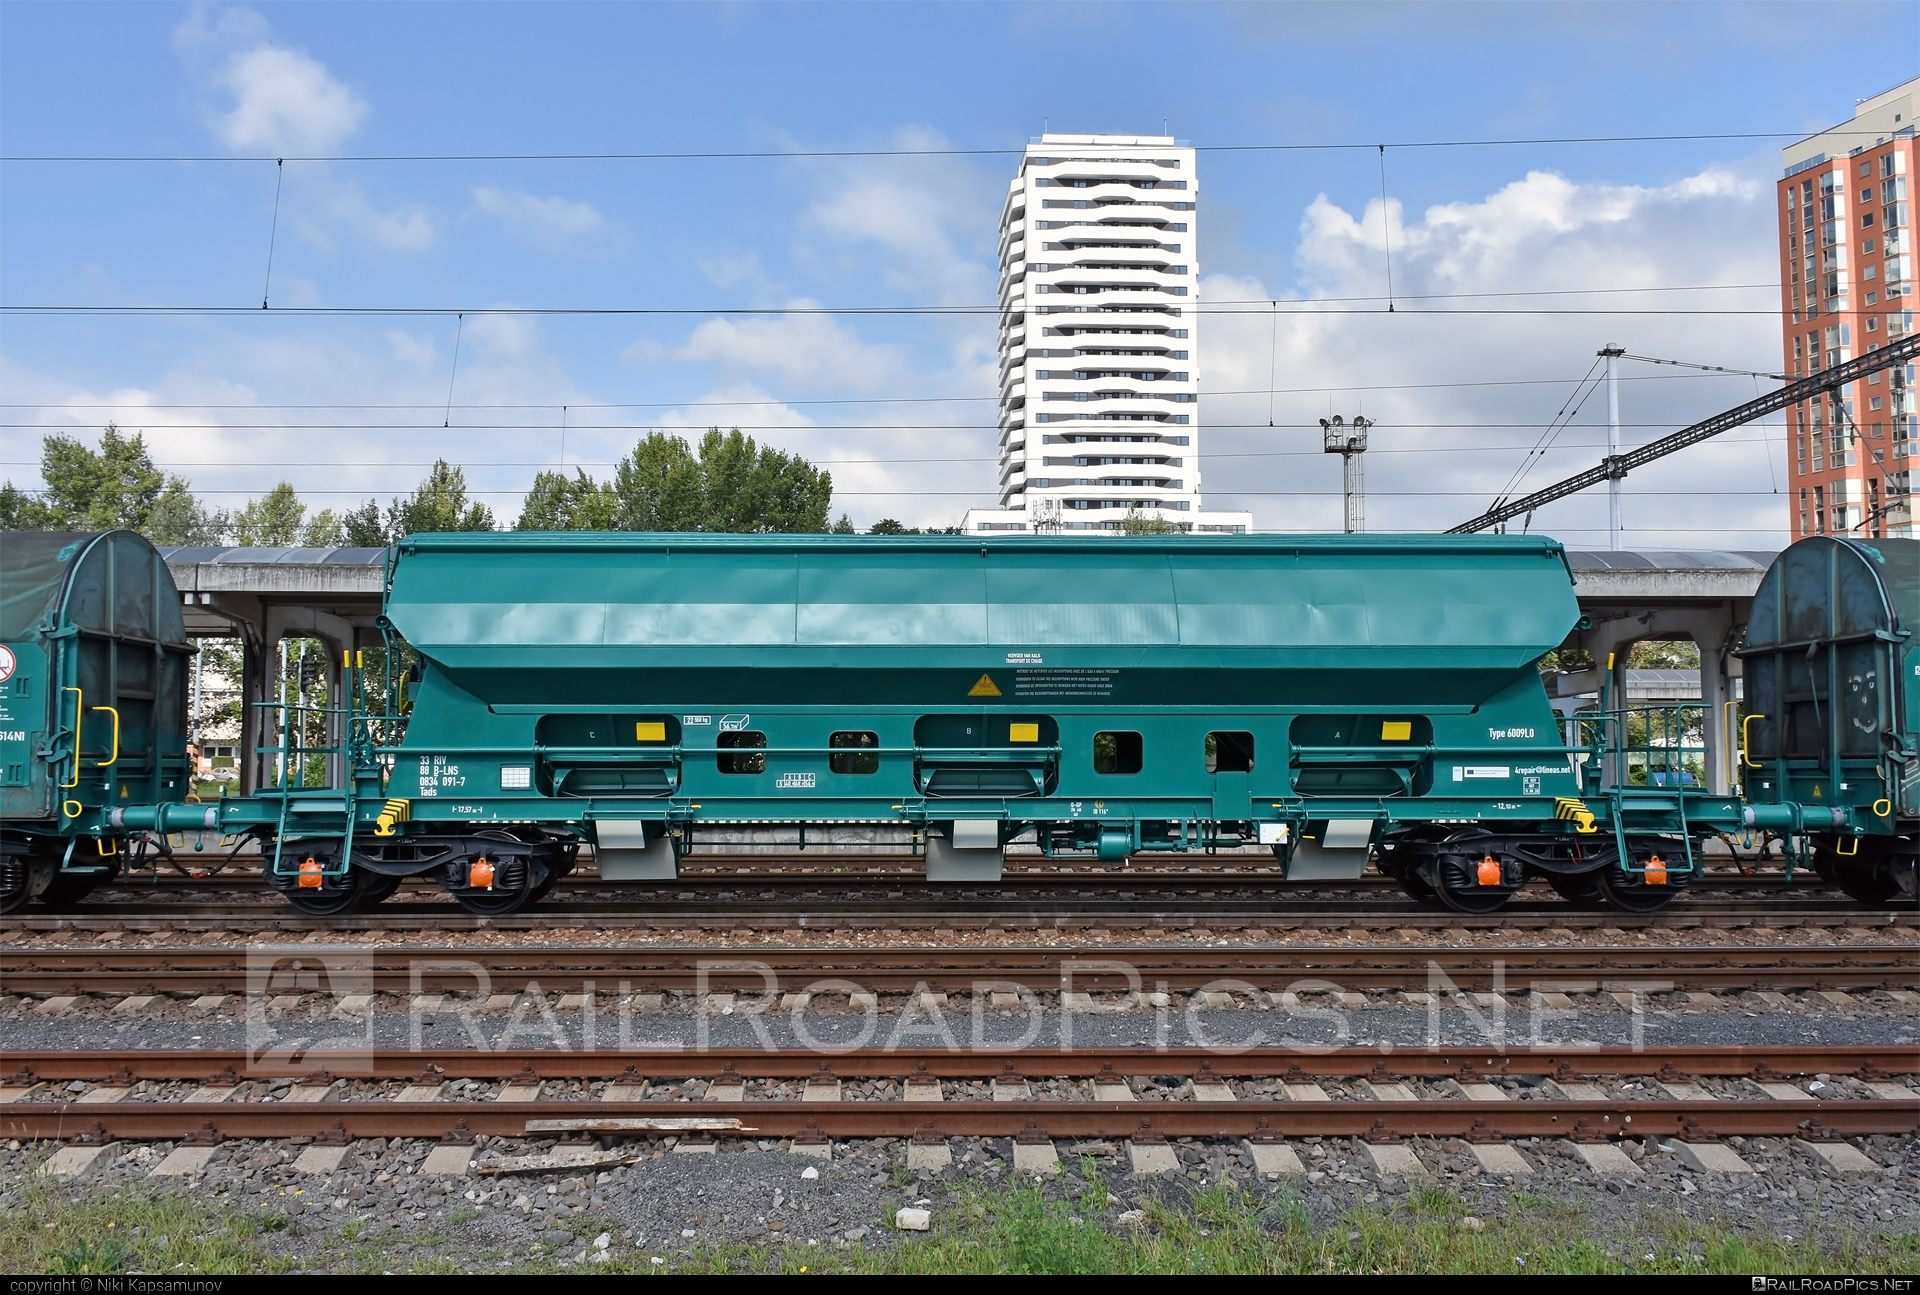 Class T - Tads - Type 6009L0 - 33 88 0834 091-7 operated by Lineas SA/NV #cargo #hoppercar #hopperwagon #lineas #tads